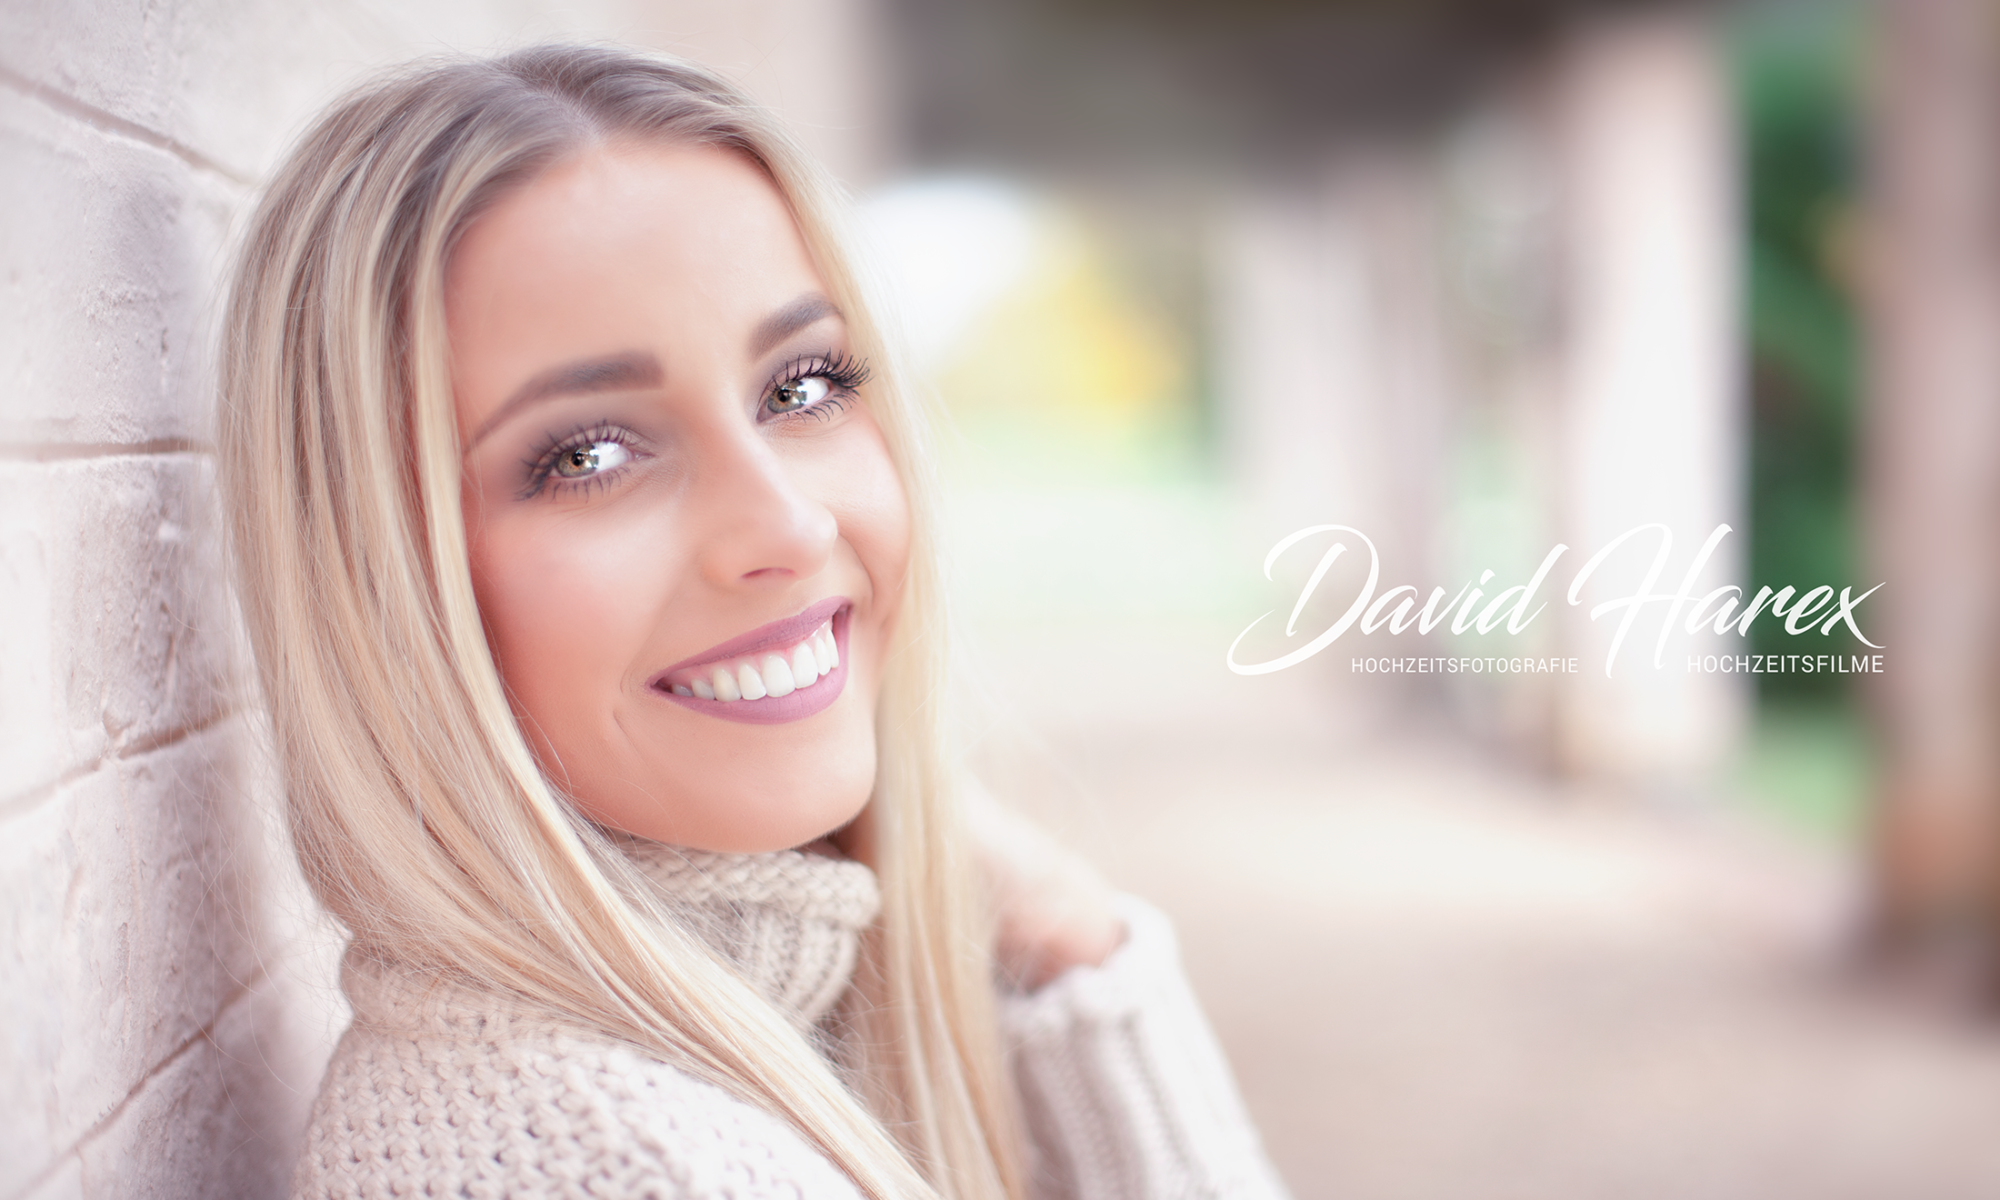 Portrait Fotos in Cottbus im Branitzer Park mit David Harex